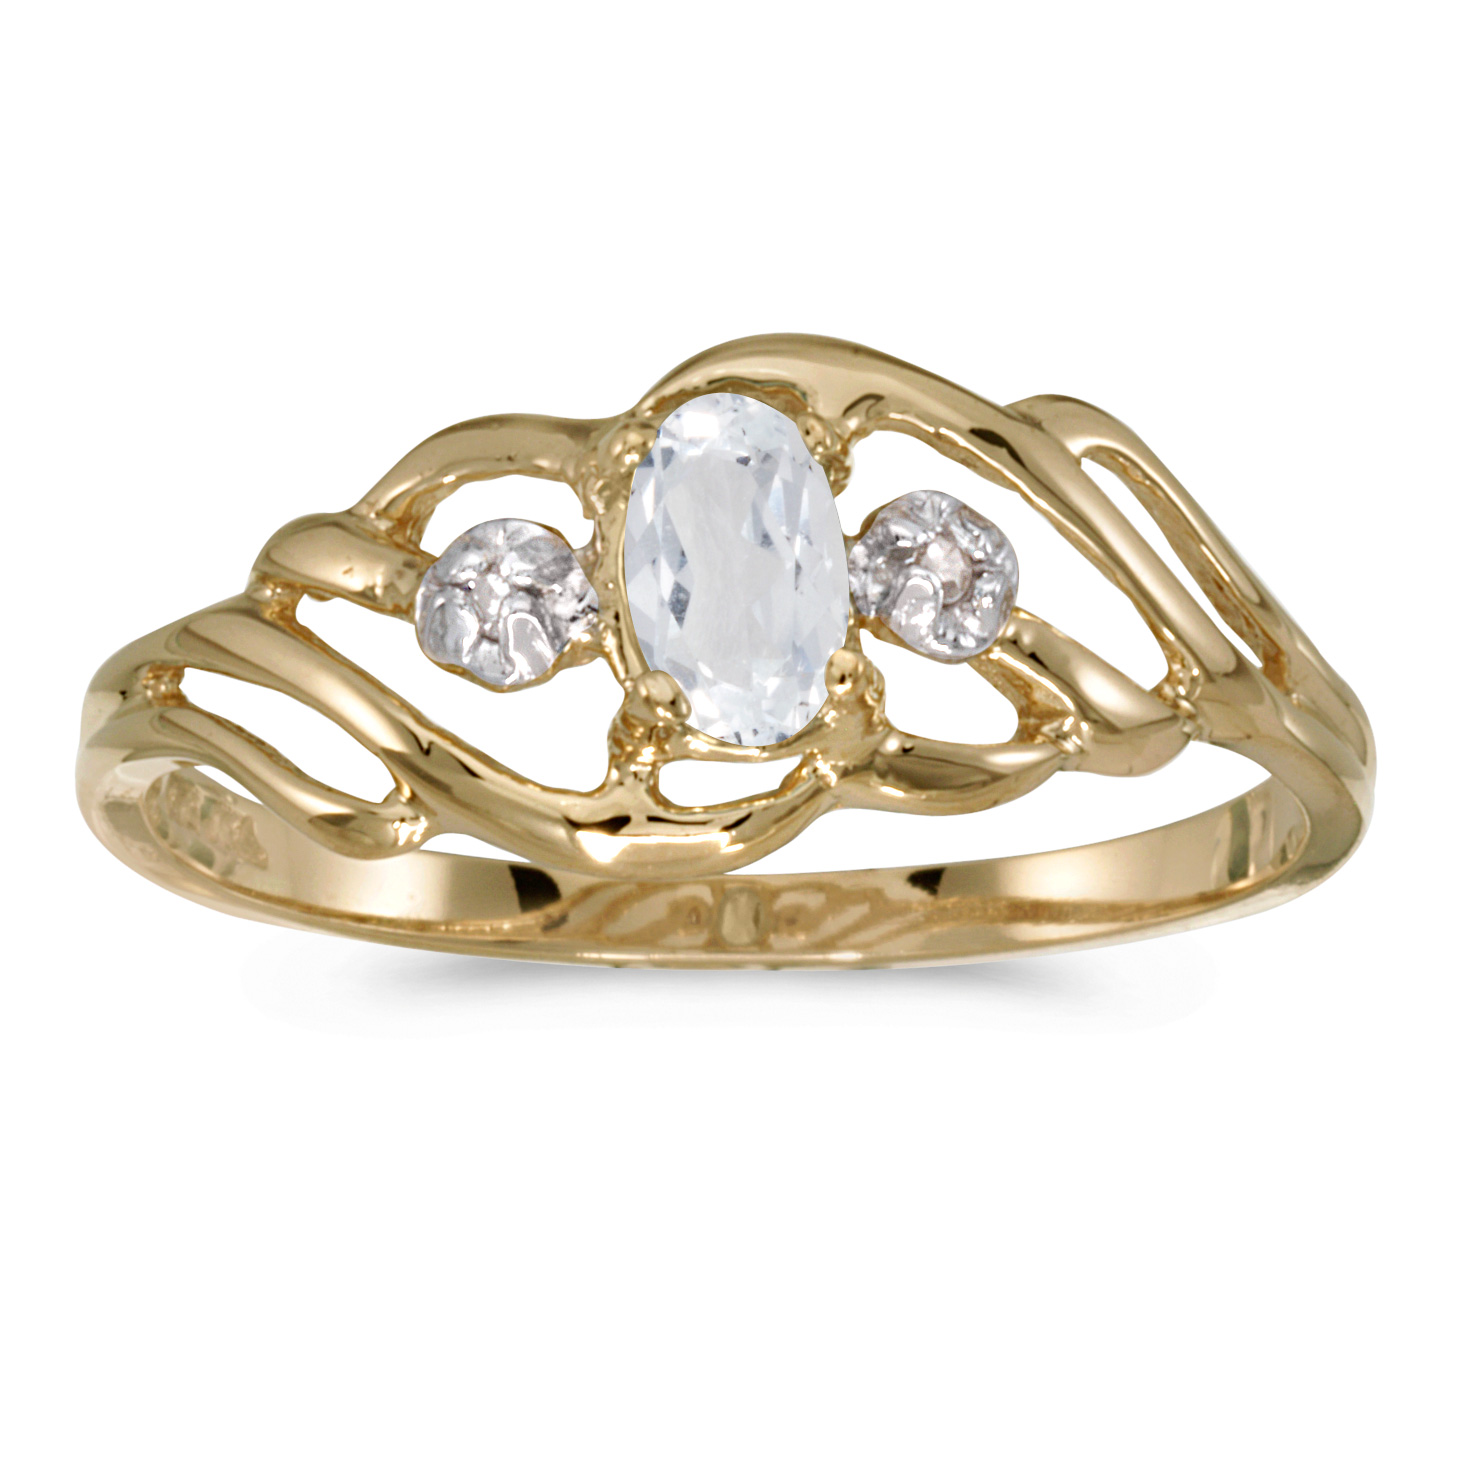 10k Yellow Gold Oval White Topaz And Diamond Ring by